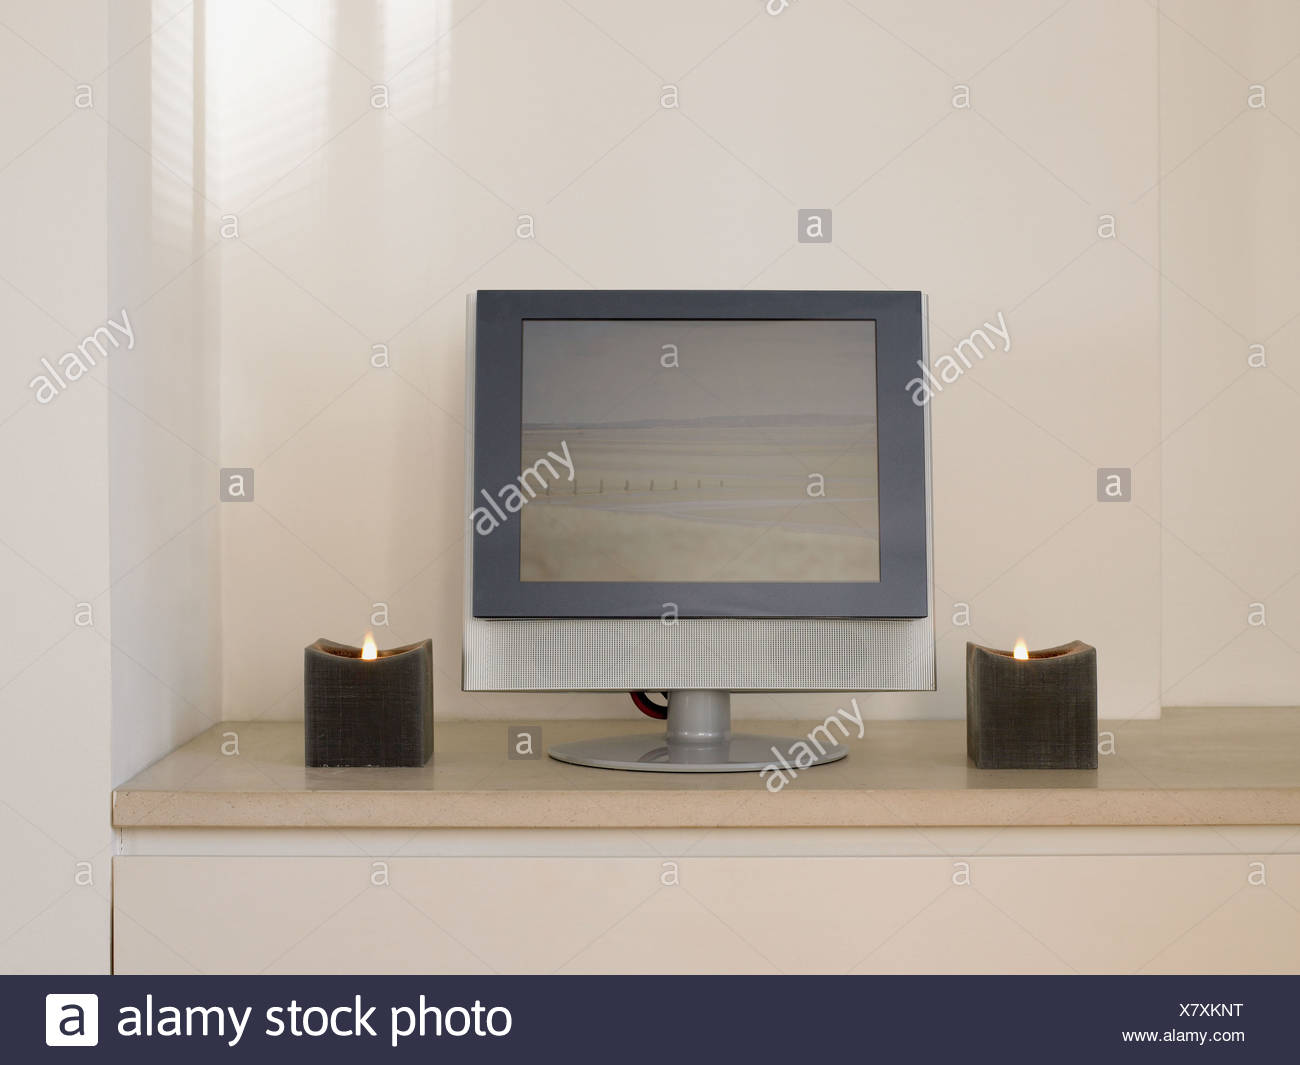 Television screen and candles - Stock Image